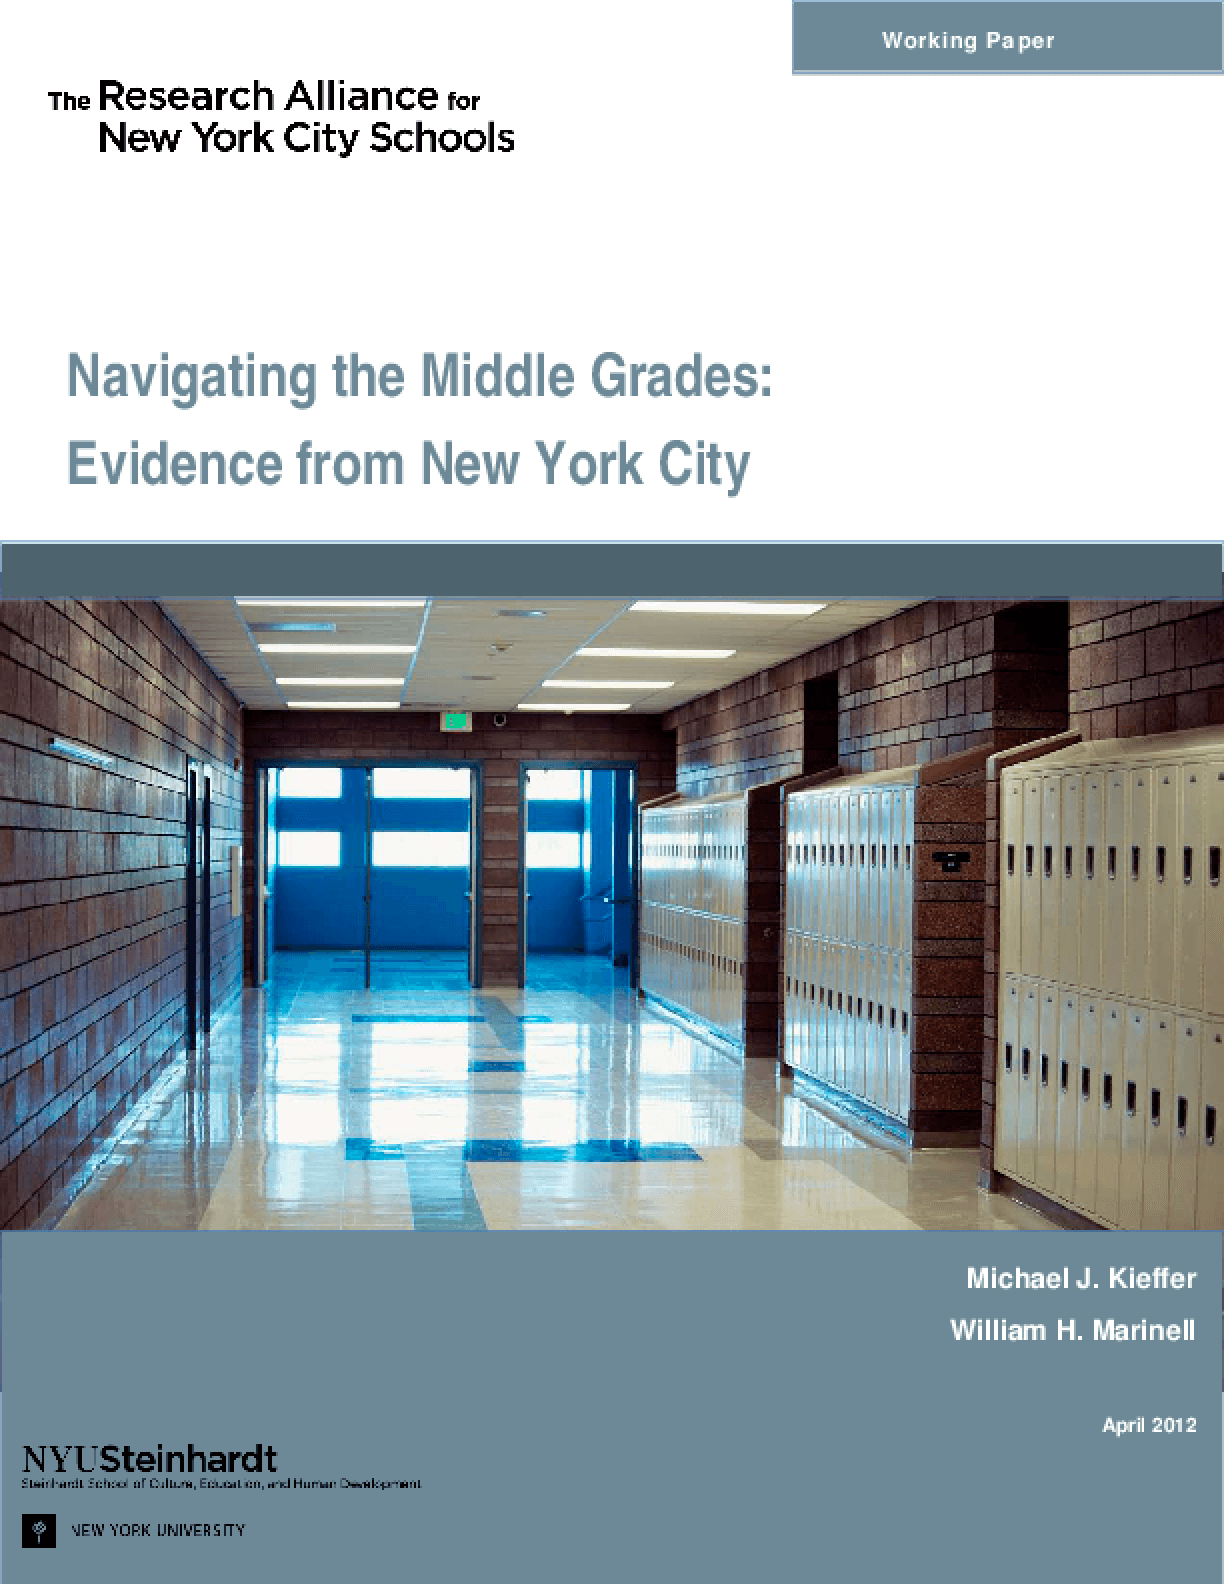 Navigating the Middle Grades: Evidence from New York City